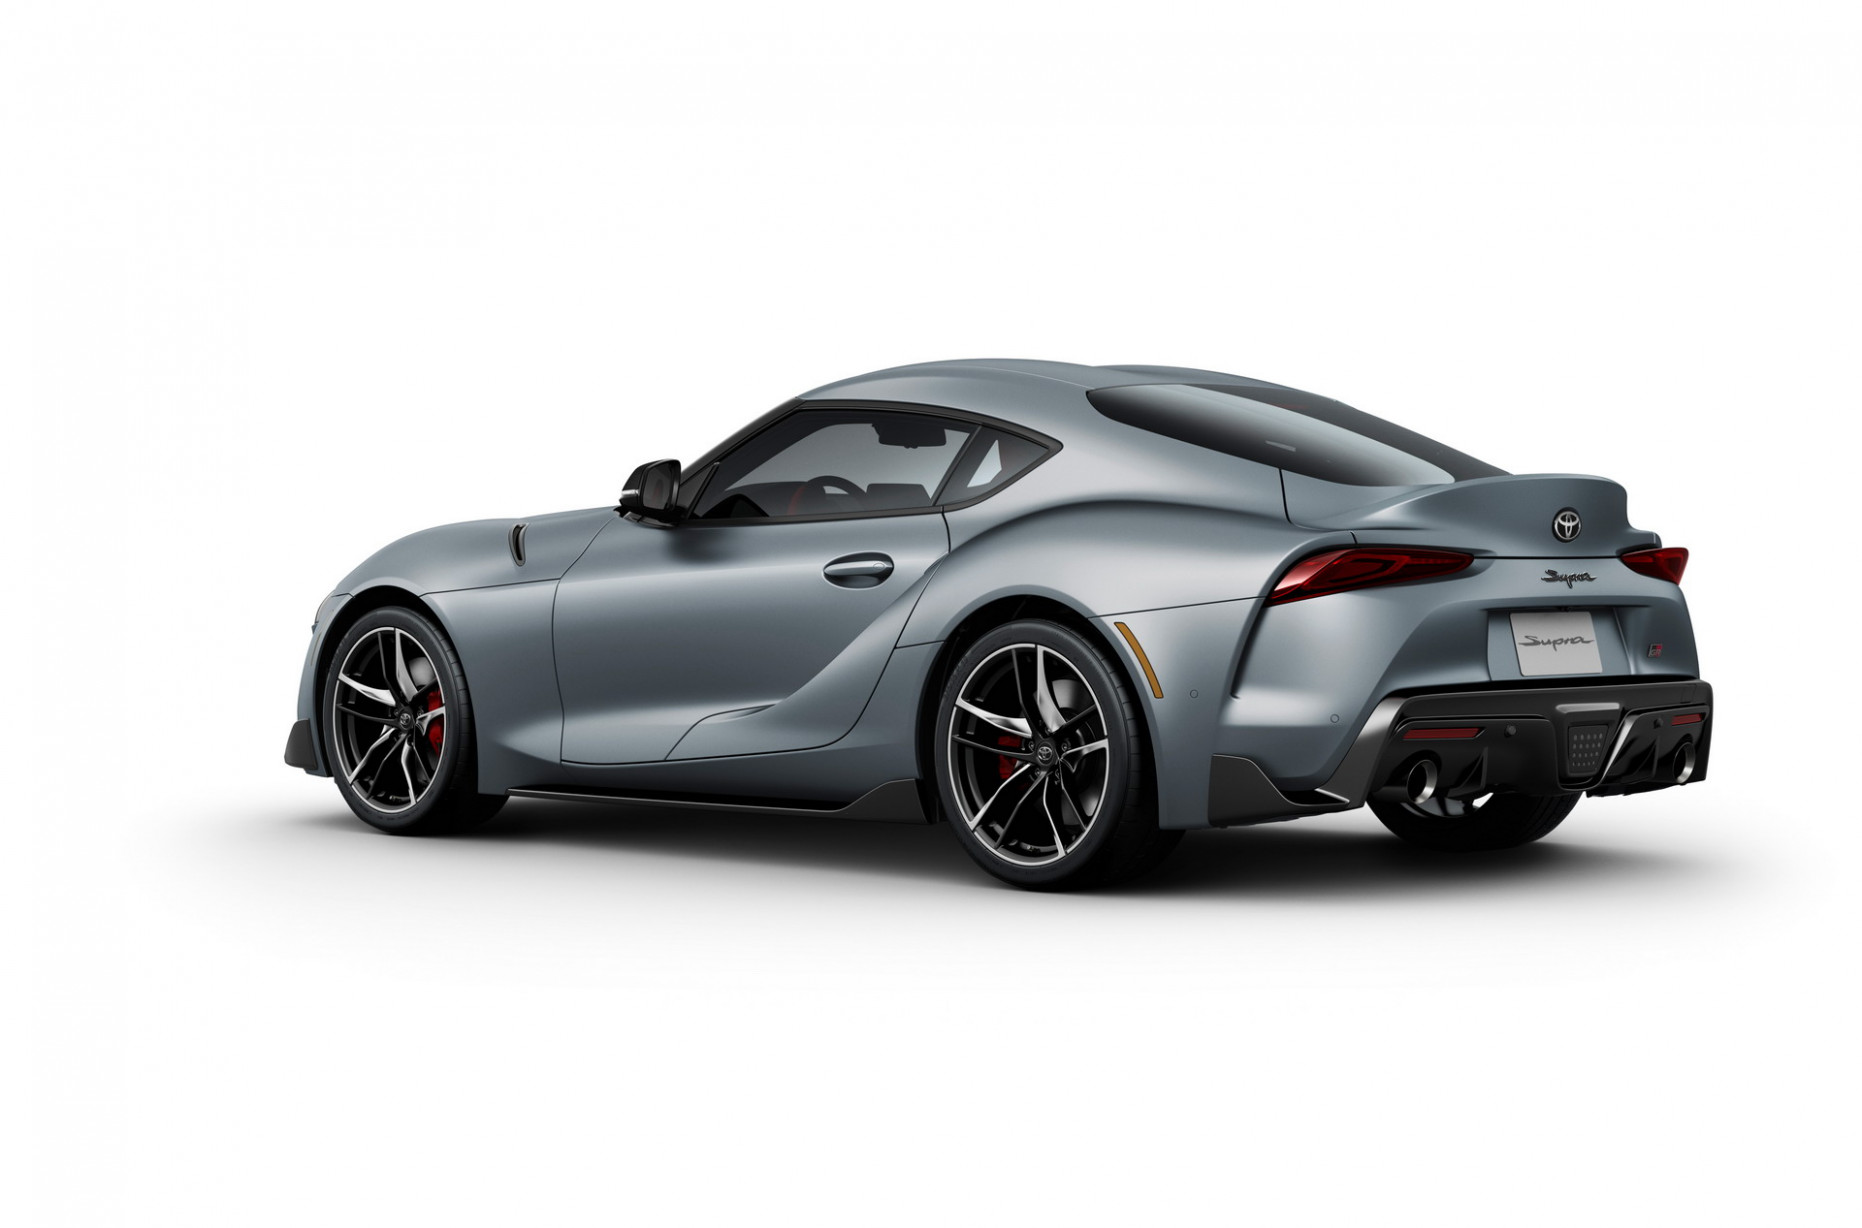 Redesign and Concept Toyota Gr Supra 2022 Price